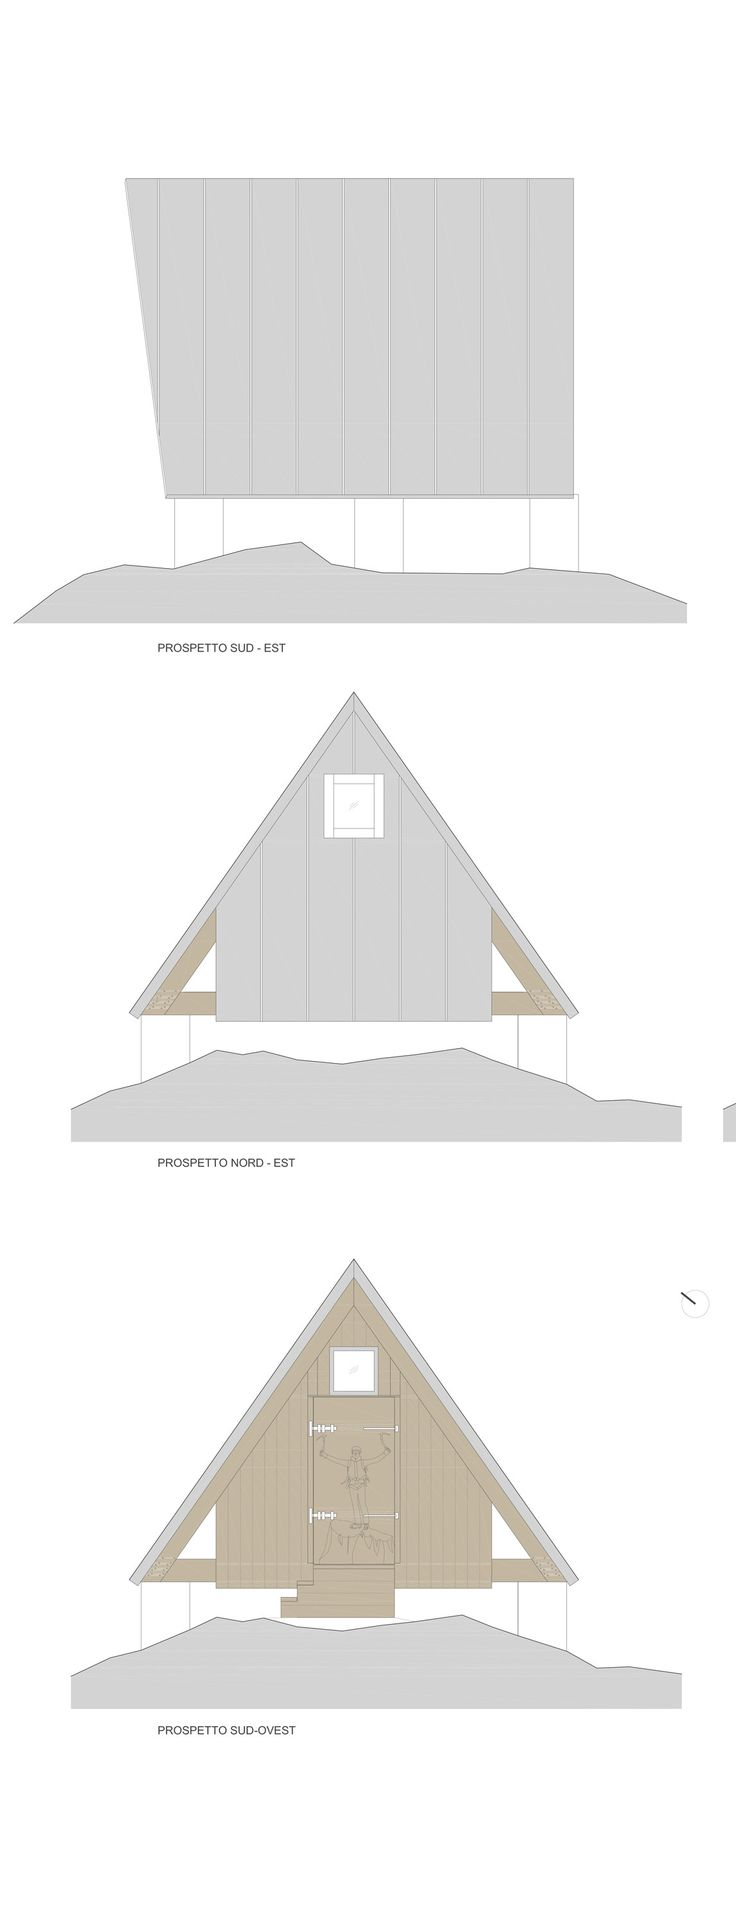 100 besten A-Frame addiction Bilder auf Pinterest | Architektur ...